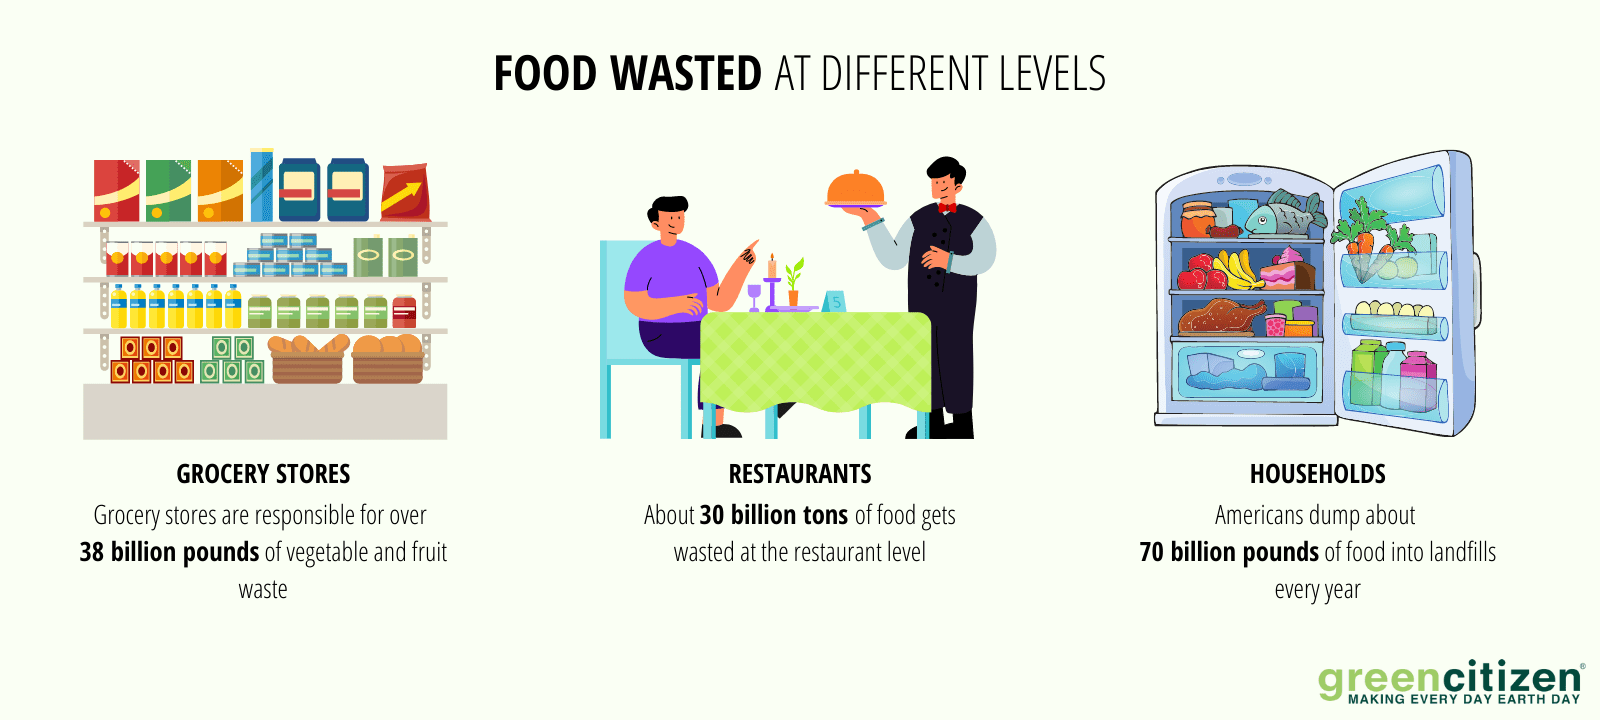 Food waste at different levels